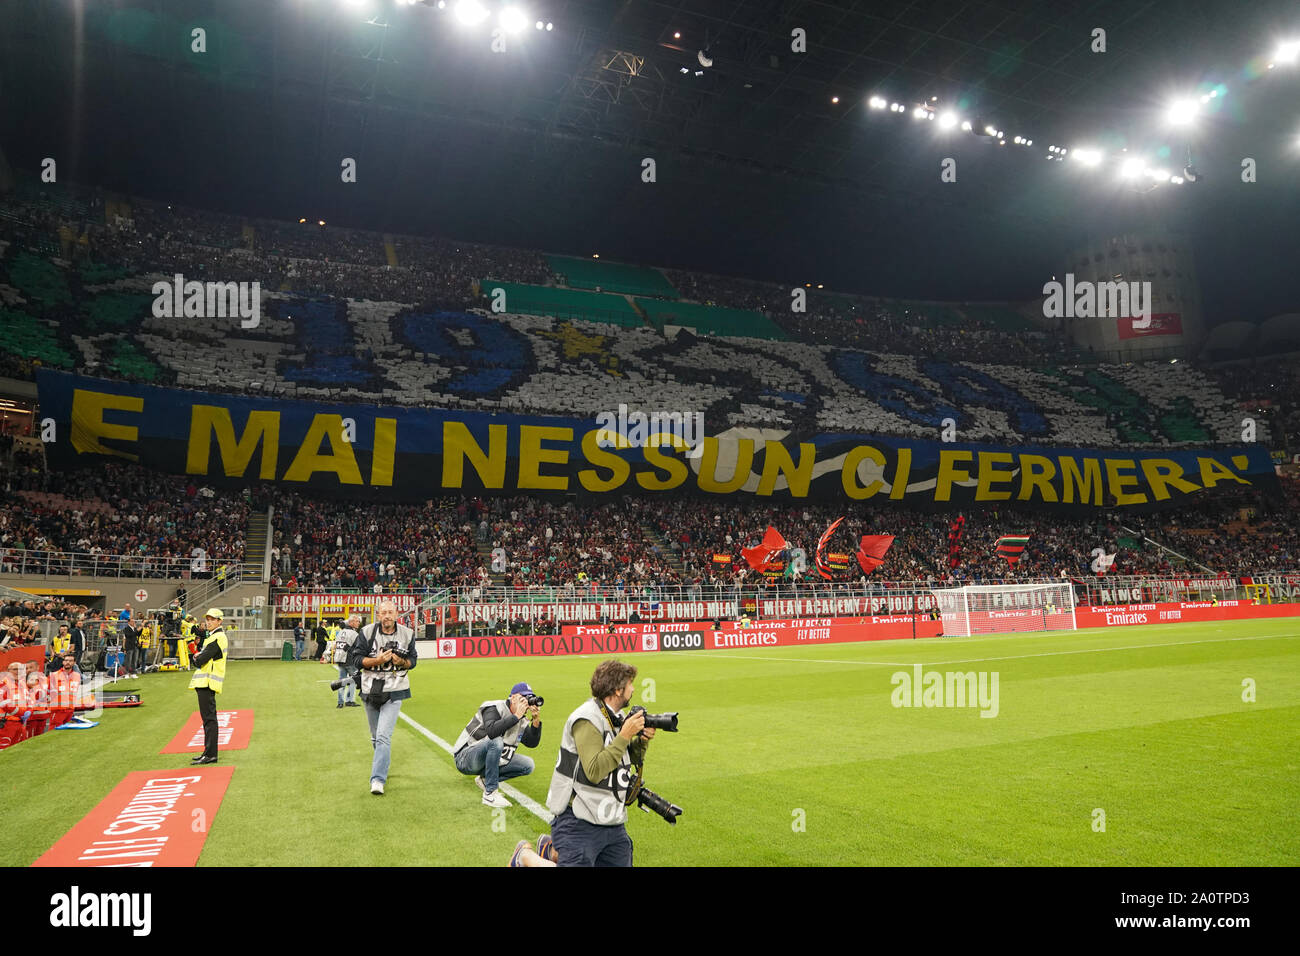 MILAN, ITALY - SEPTEMBER 21: The FC Internazionale pre-game ceremony during the Seria A match between AC Milan vs FC Internazionale at Stadio San Siro, Stadio Giuseppe Meazza on September 21, 2019 in Milan, Italy.  Credit: Daniela Porcelli/SPP/Alamy Live News Stock Photo